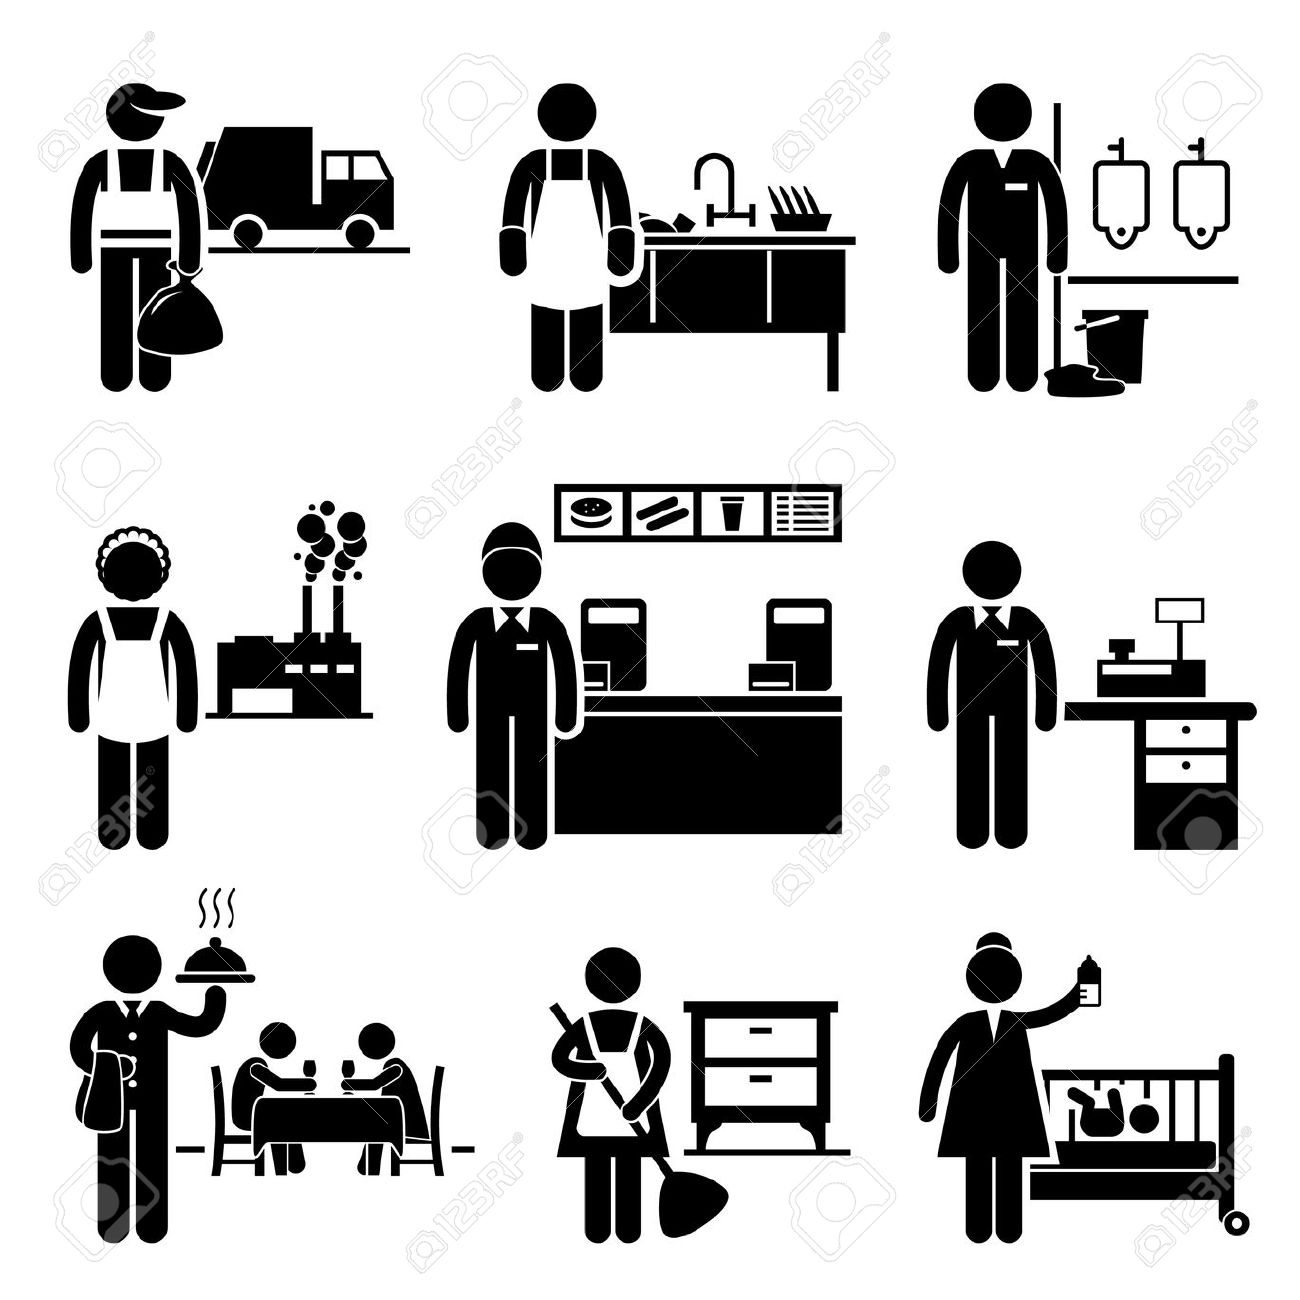 Income . Cashier clipart silhouette